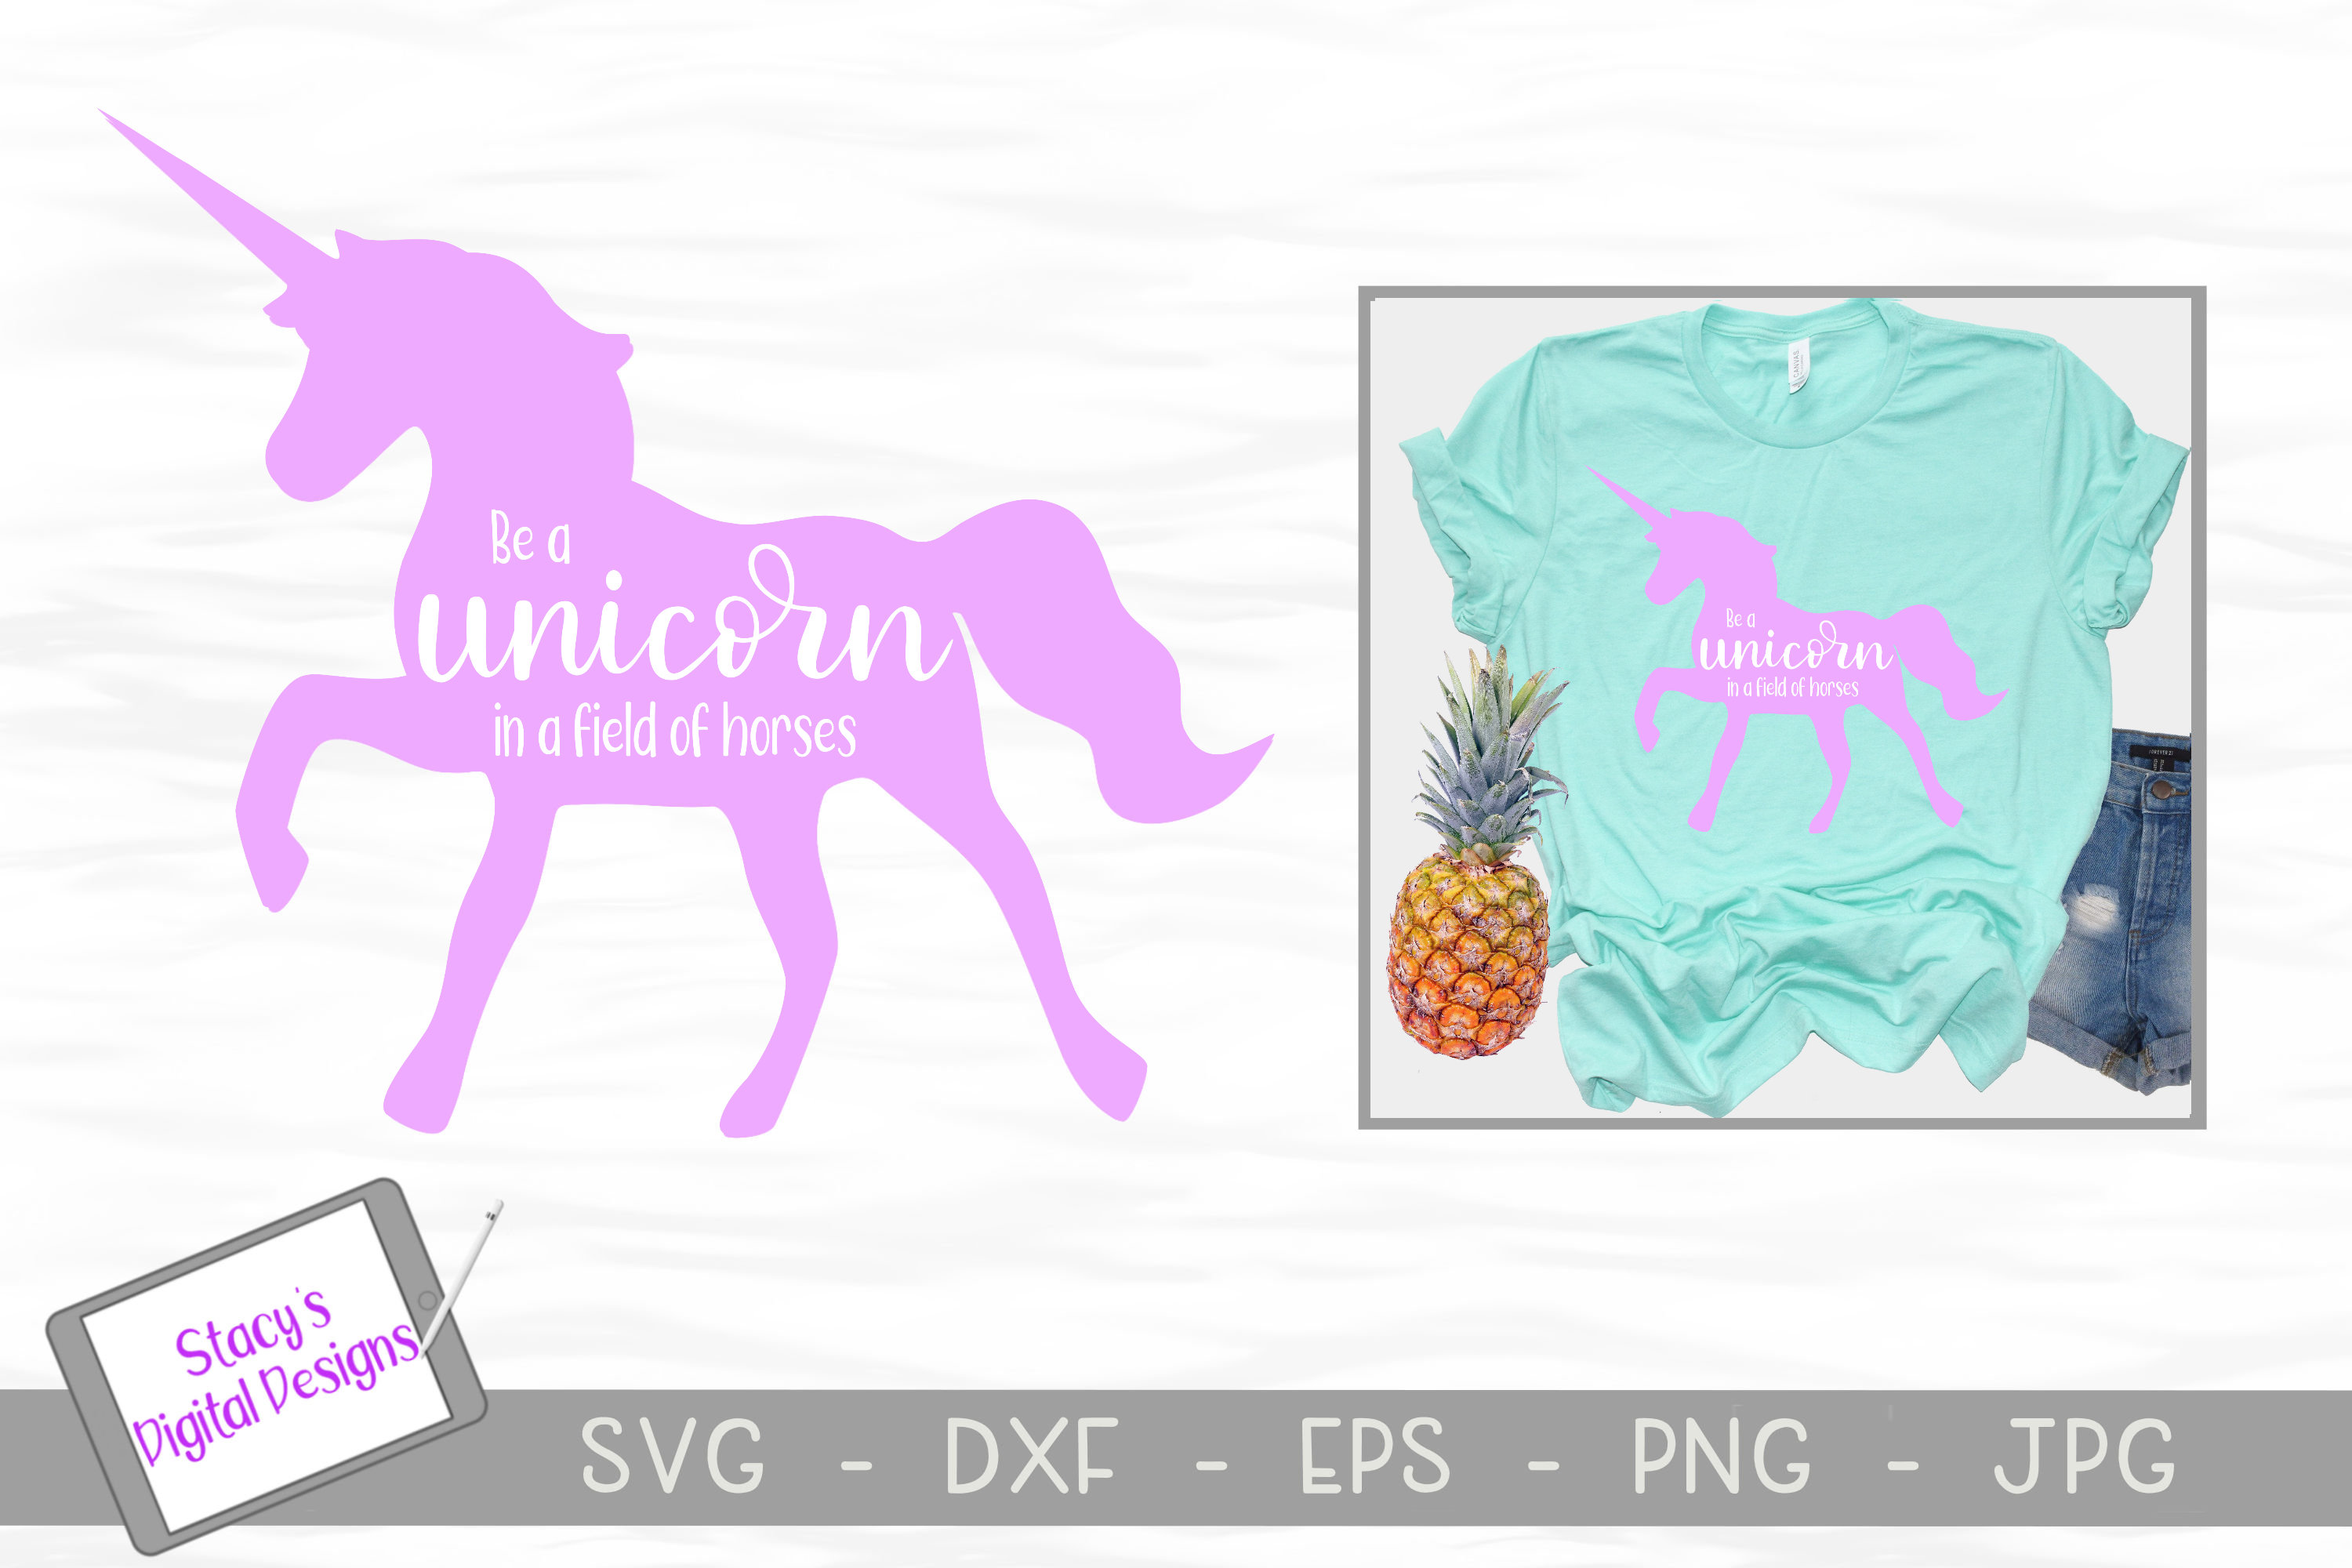 Unicorn SVG - Be a unicorn in a field of horses example image 1